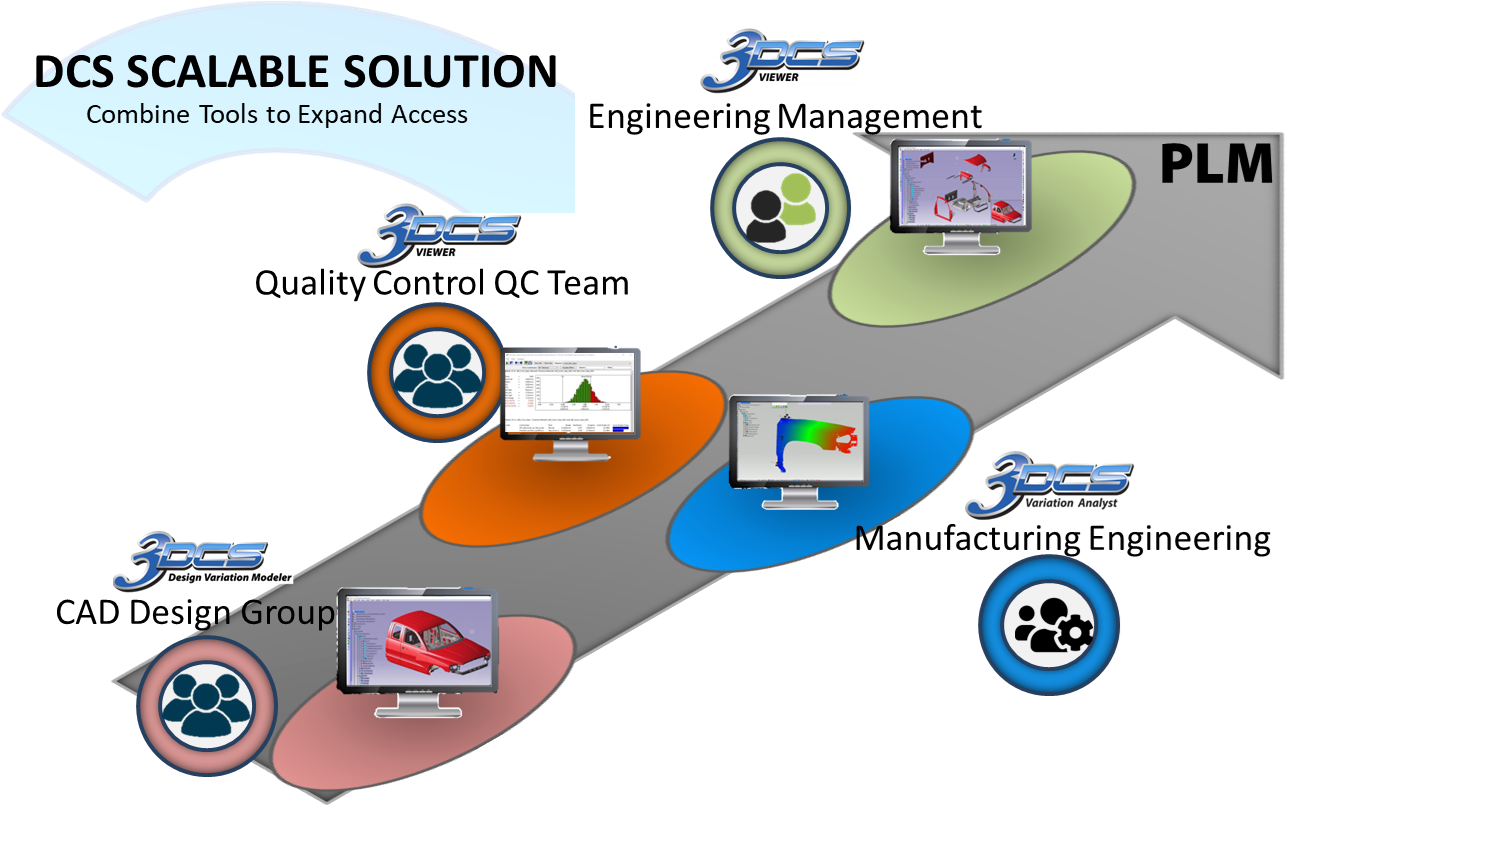 dcs-scalable-solution-example-1